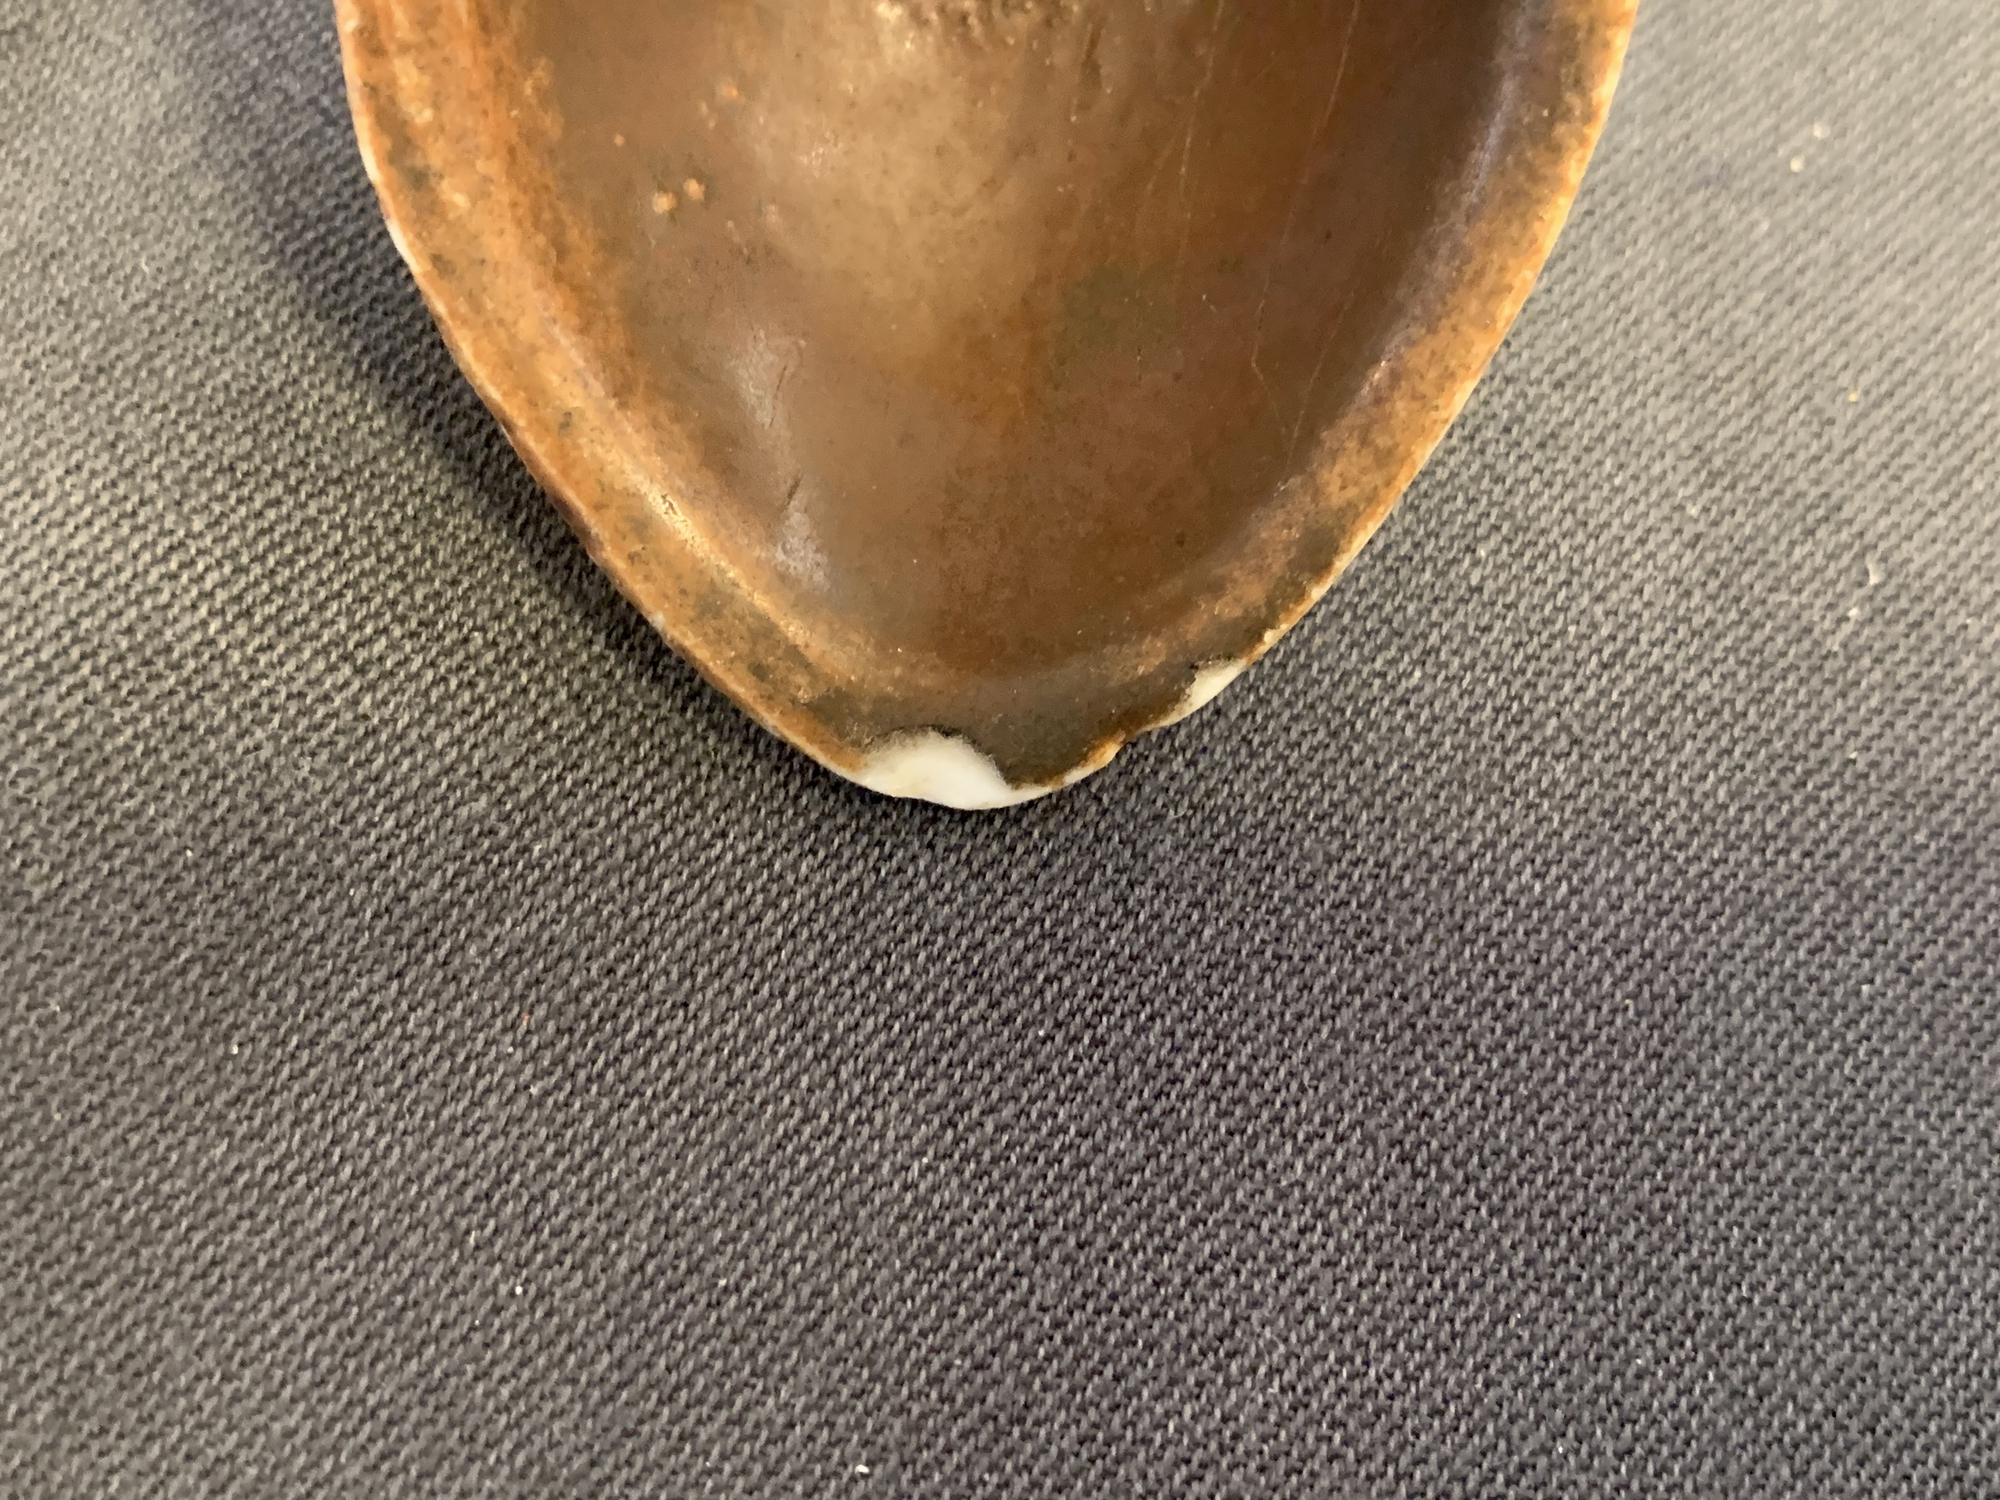 22 Chinese brown- and white-glazed spoons, 17/18th C. - Image 17 of 19